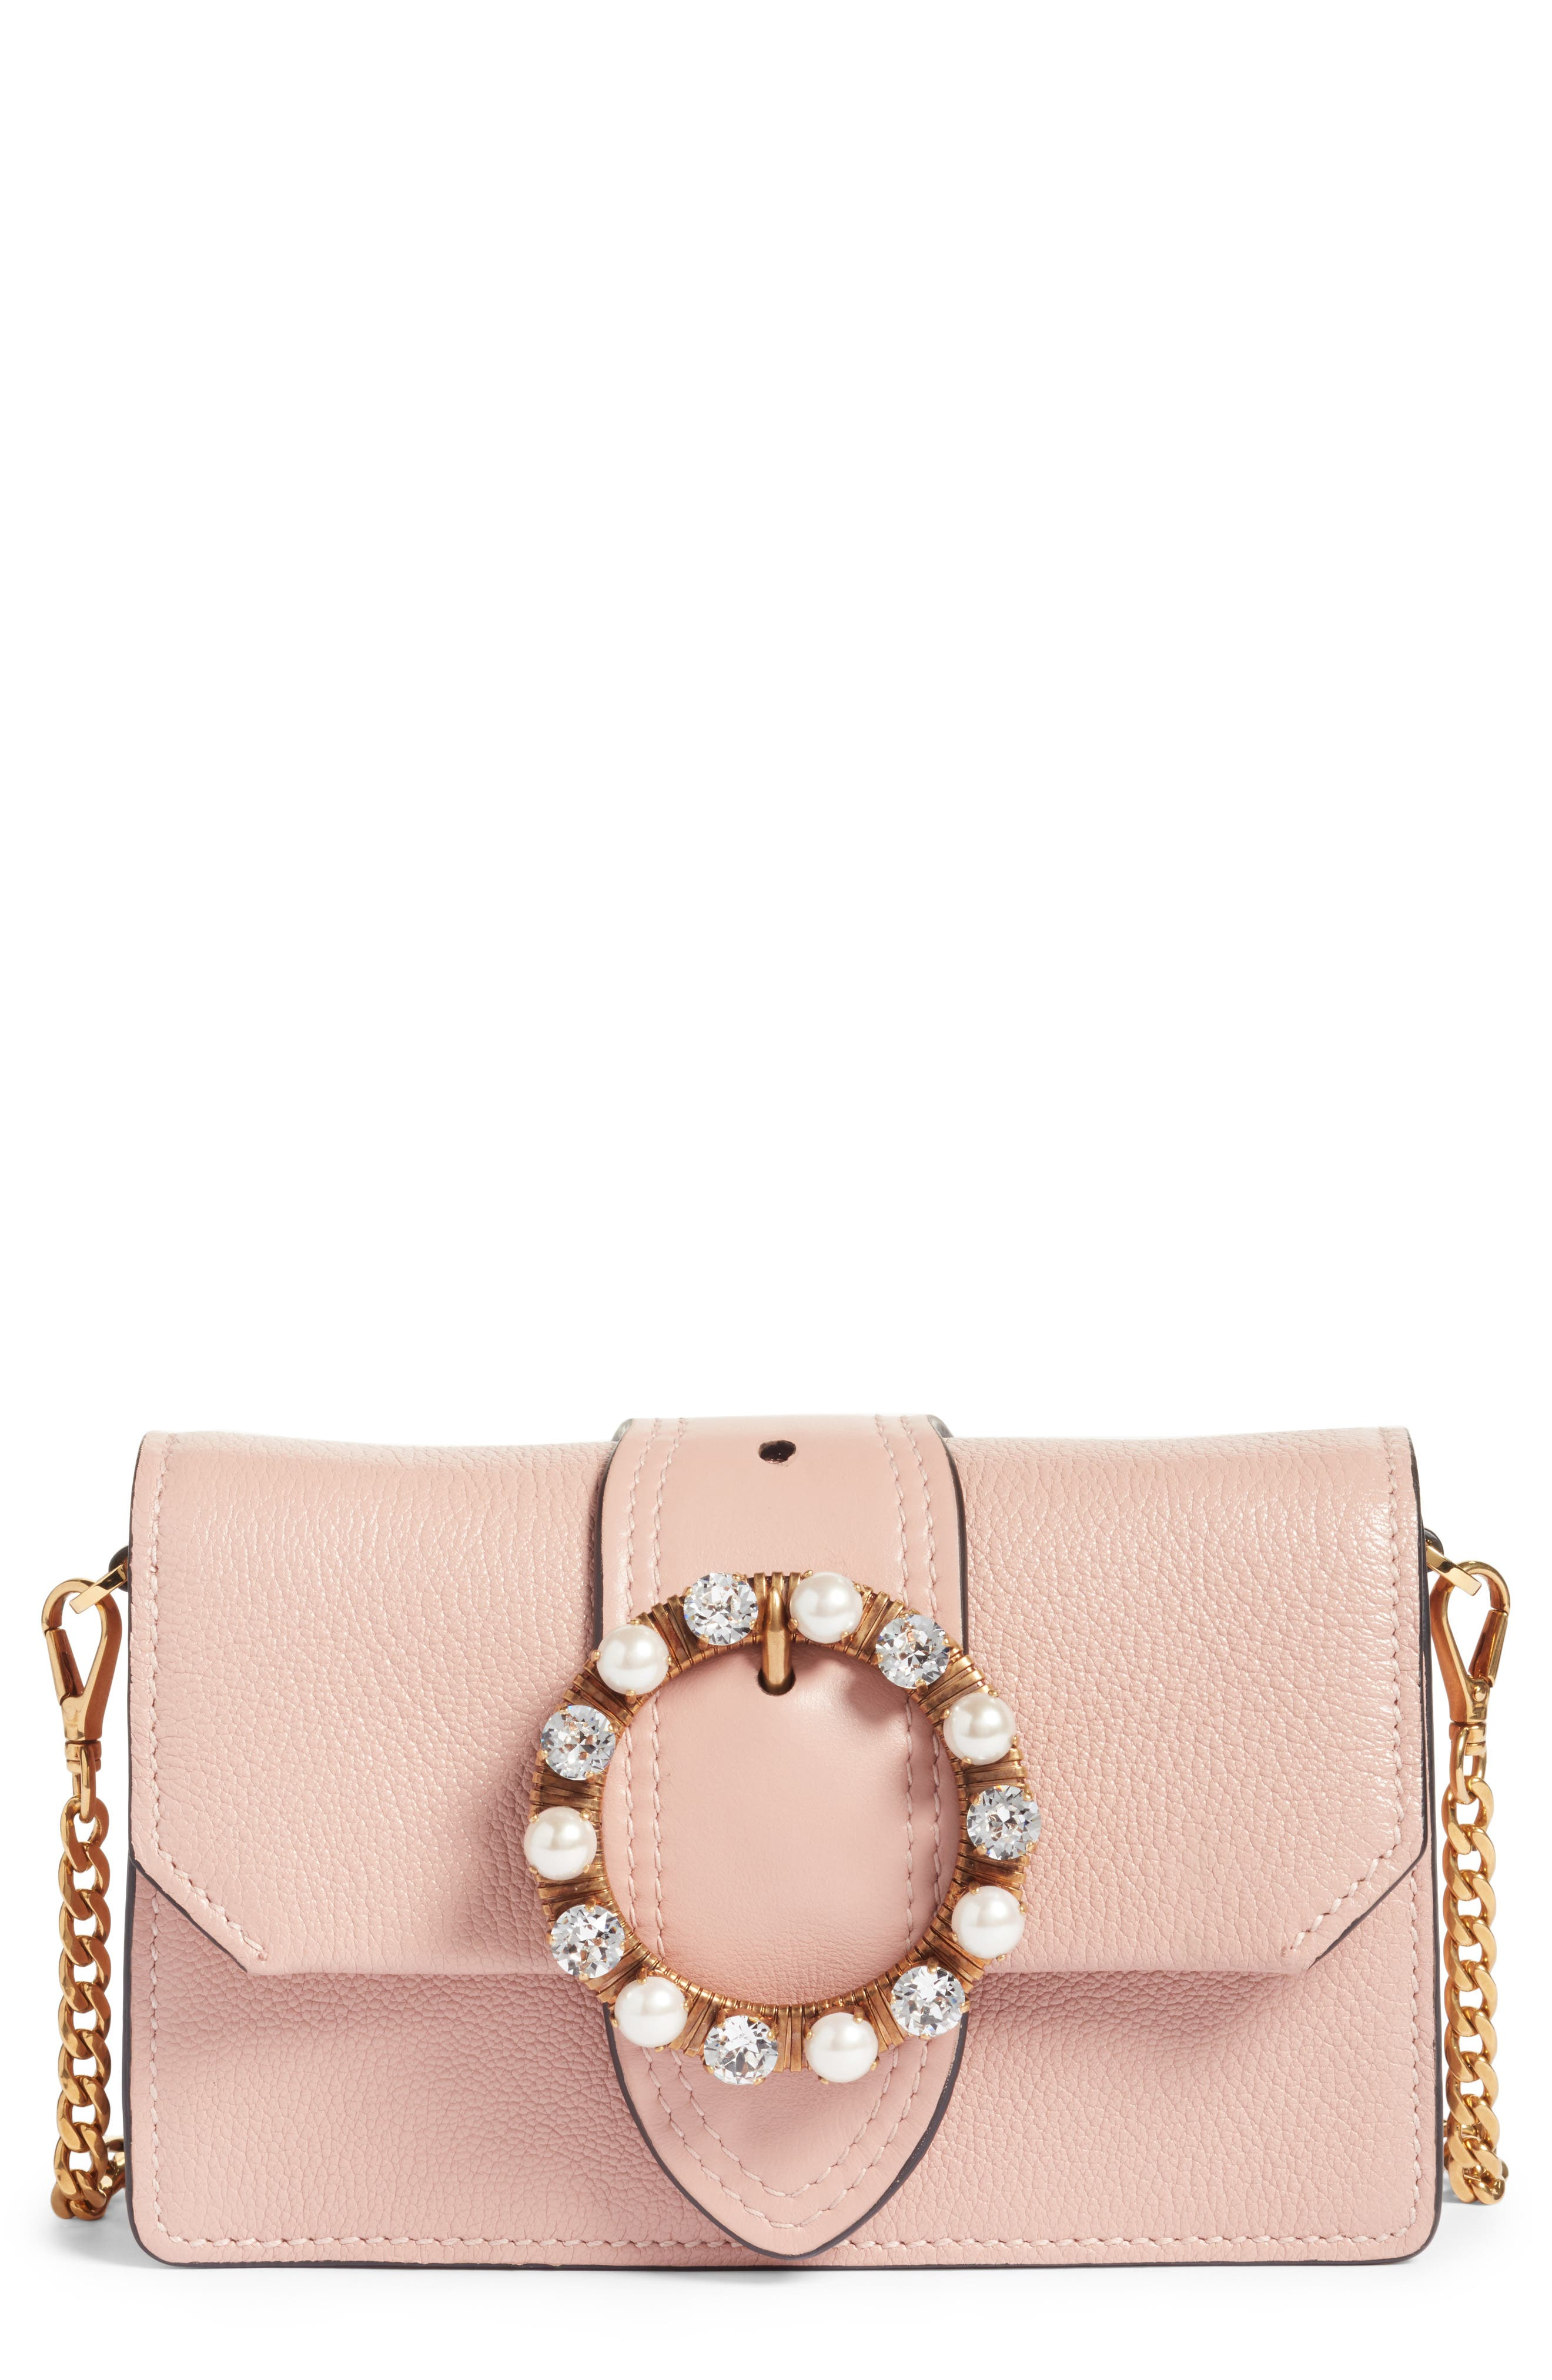 Lady Madras Crystal Embellished Leather Crossbody Bag,                             Main thumbnail 1, color,                             Orchidea